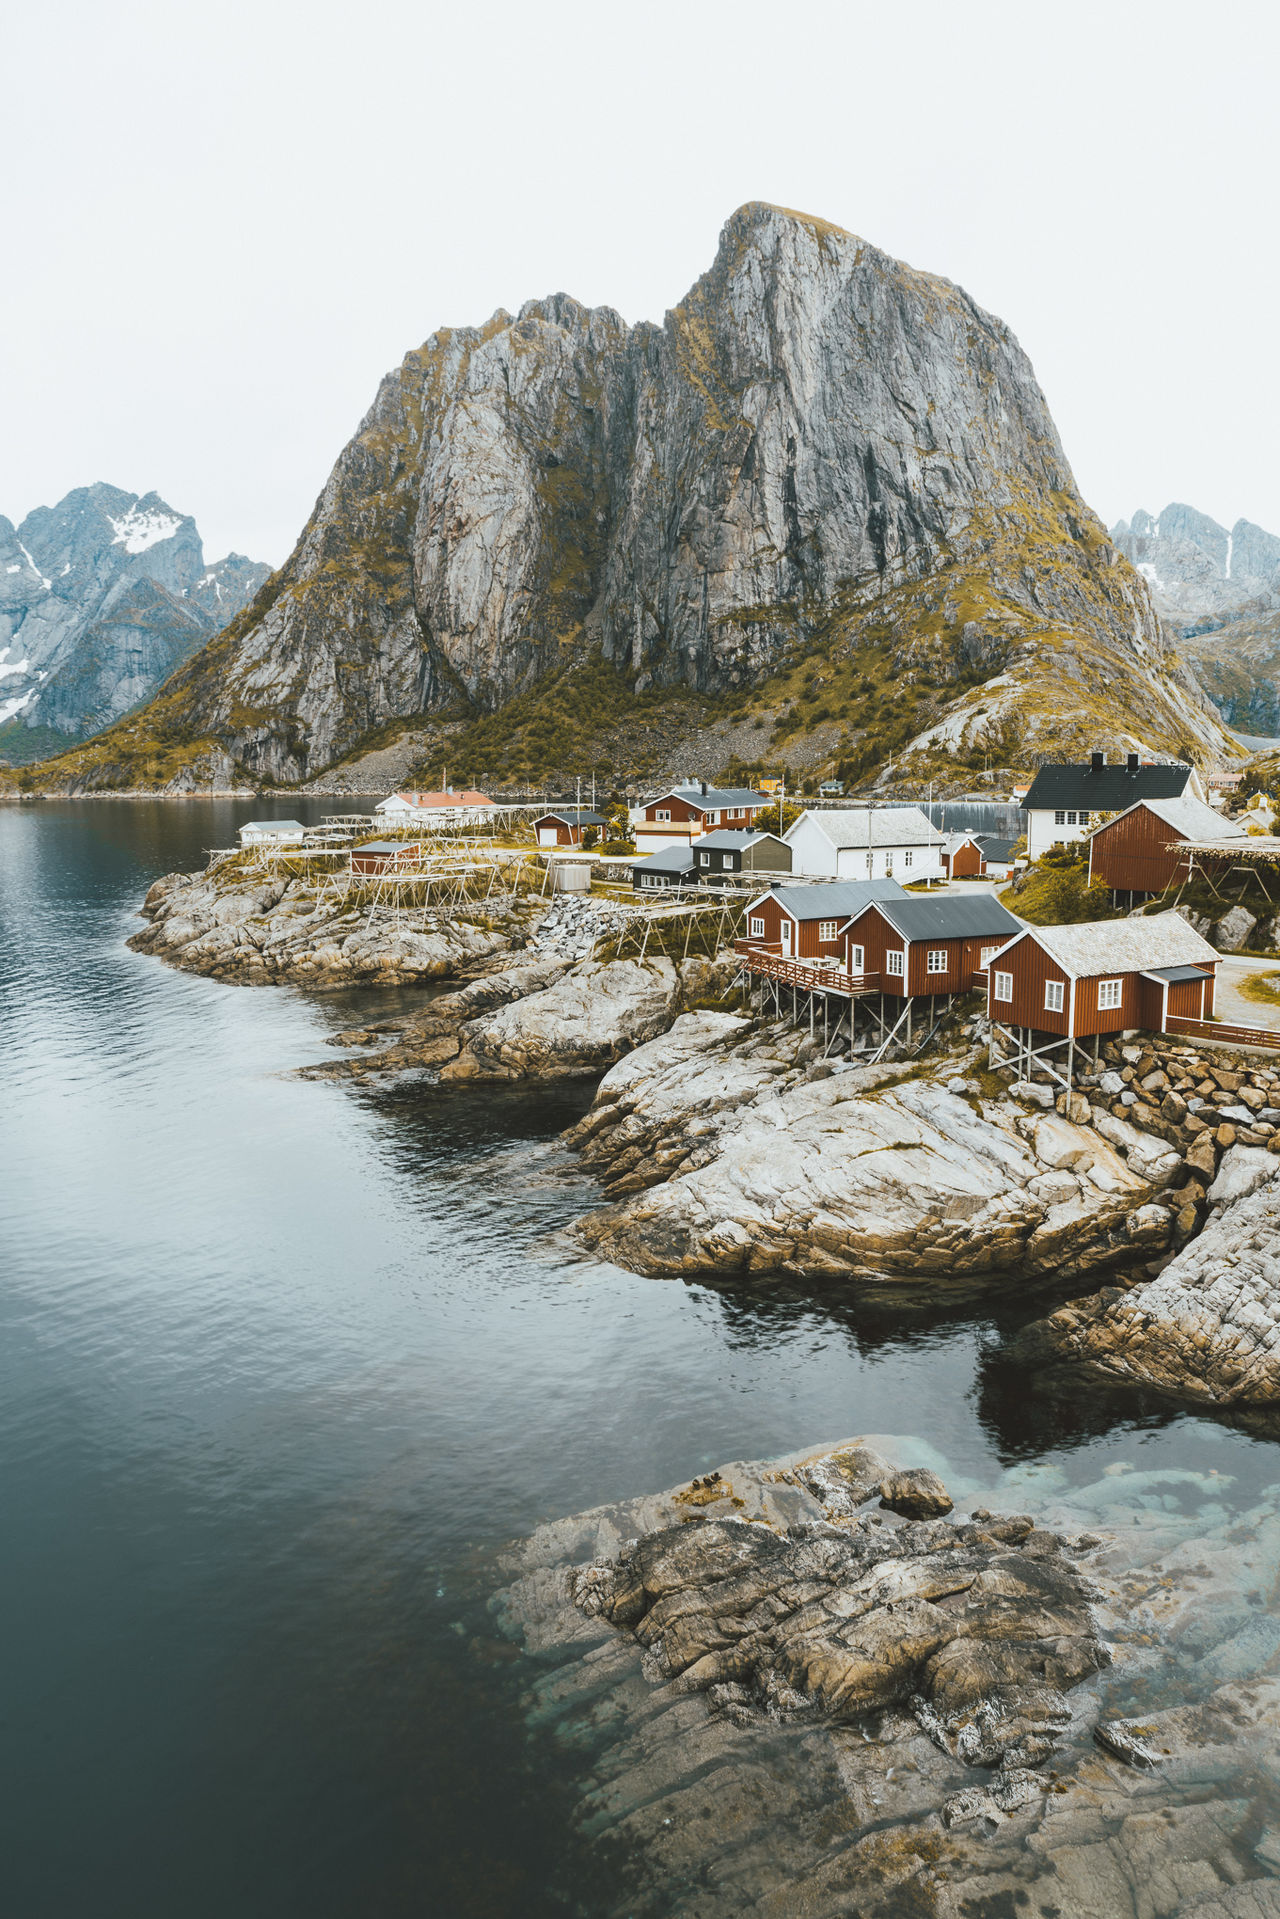 Hamnoy Rorbuer: Lofoten Islands, Norway Beauty In Nature Calm Coastline Day Fishing Village Landscape Lofoten Mountain Mountain Range Nature No People Non-urban Scene Norway Outdoors Remote Rock Formation Scenics Sky Tranquil Scene Tranquility Water